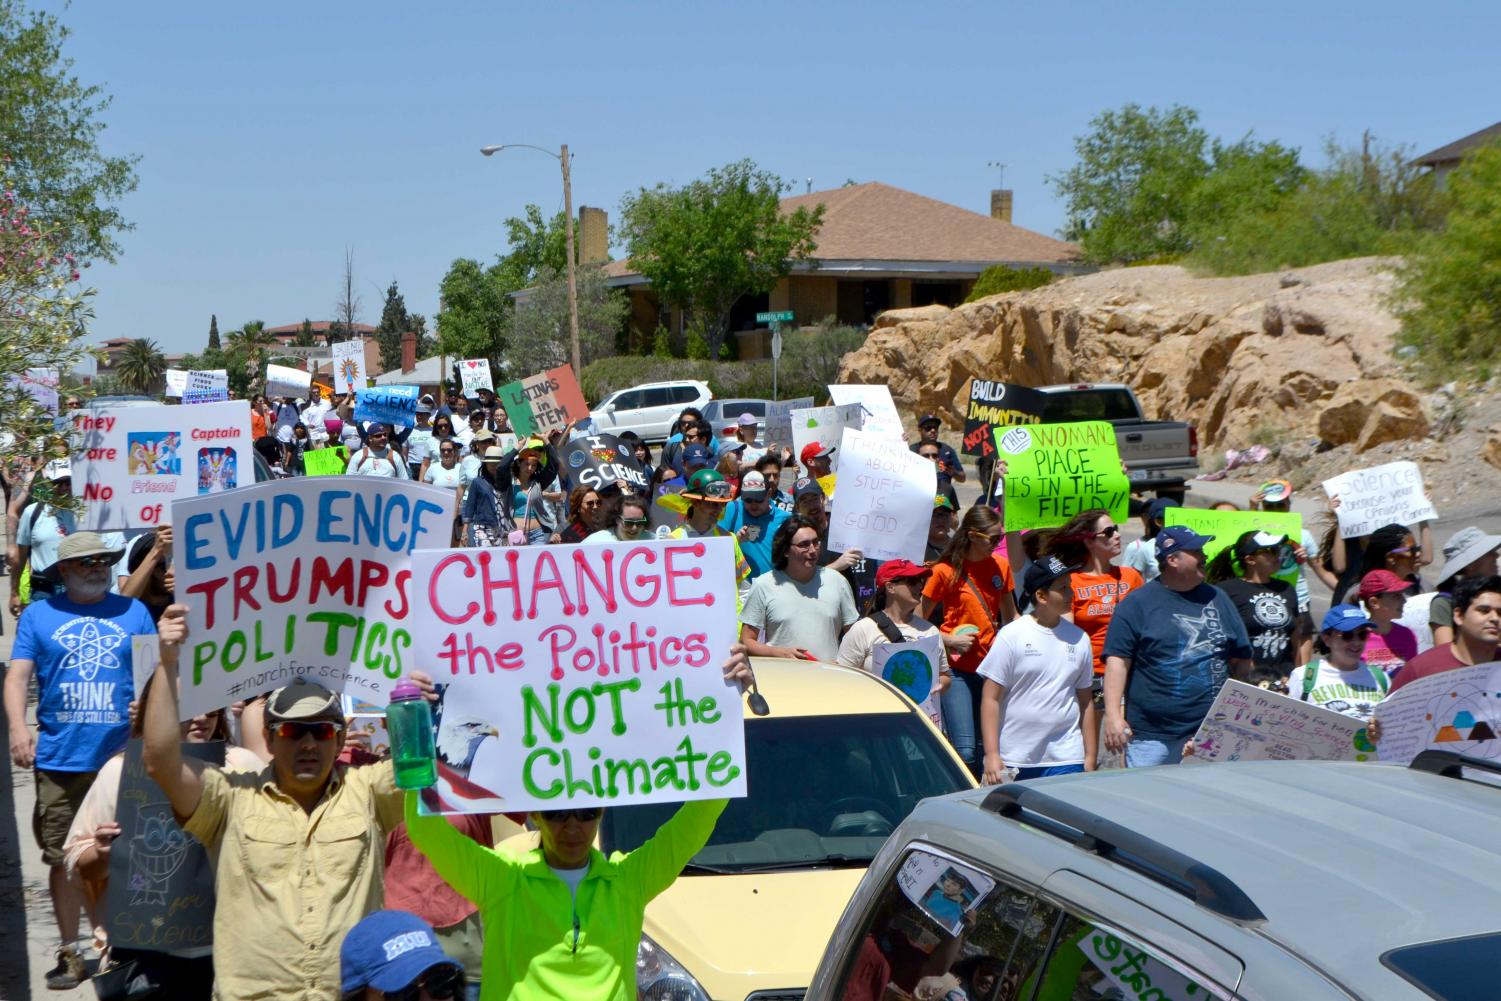 Activists marched from Mundy Park to San Jacinto Plaza on Earth Day, April 22, 2017, for the National March for Science.